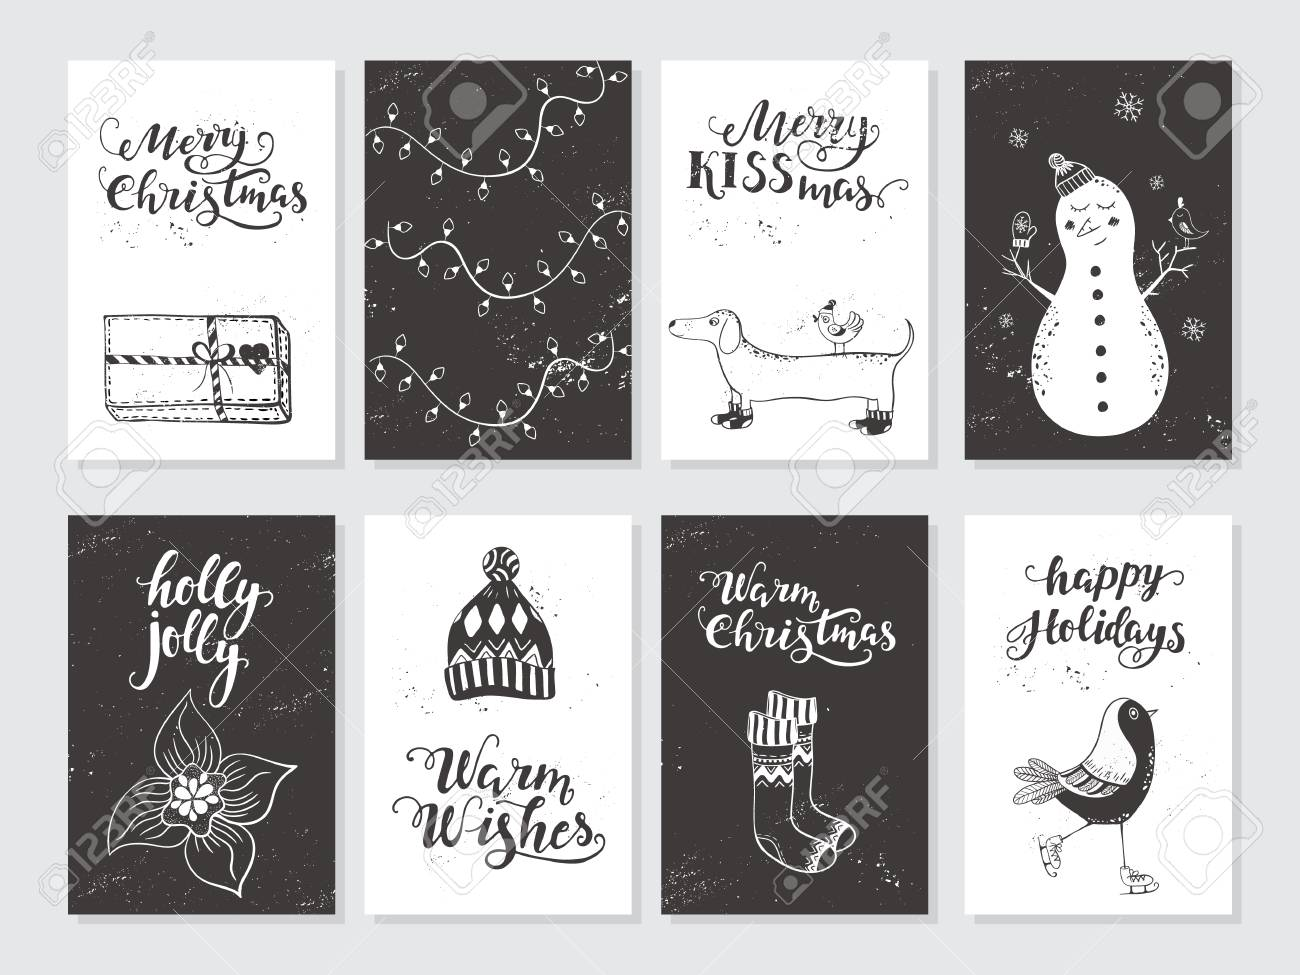 Merry Christmas Black And White Greeting Cards And Invitations ...